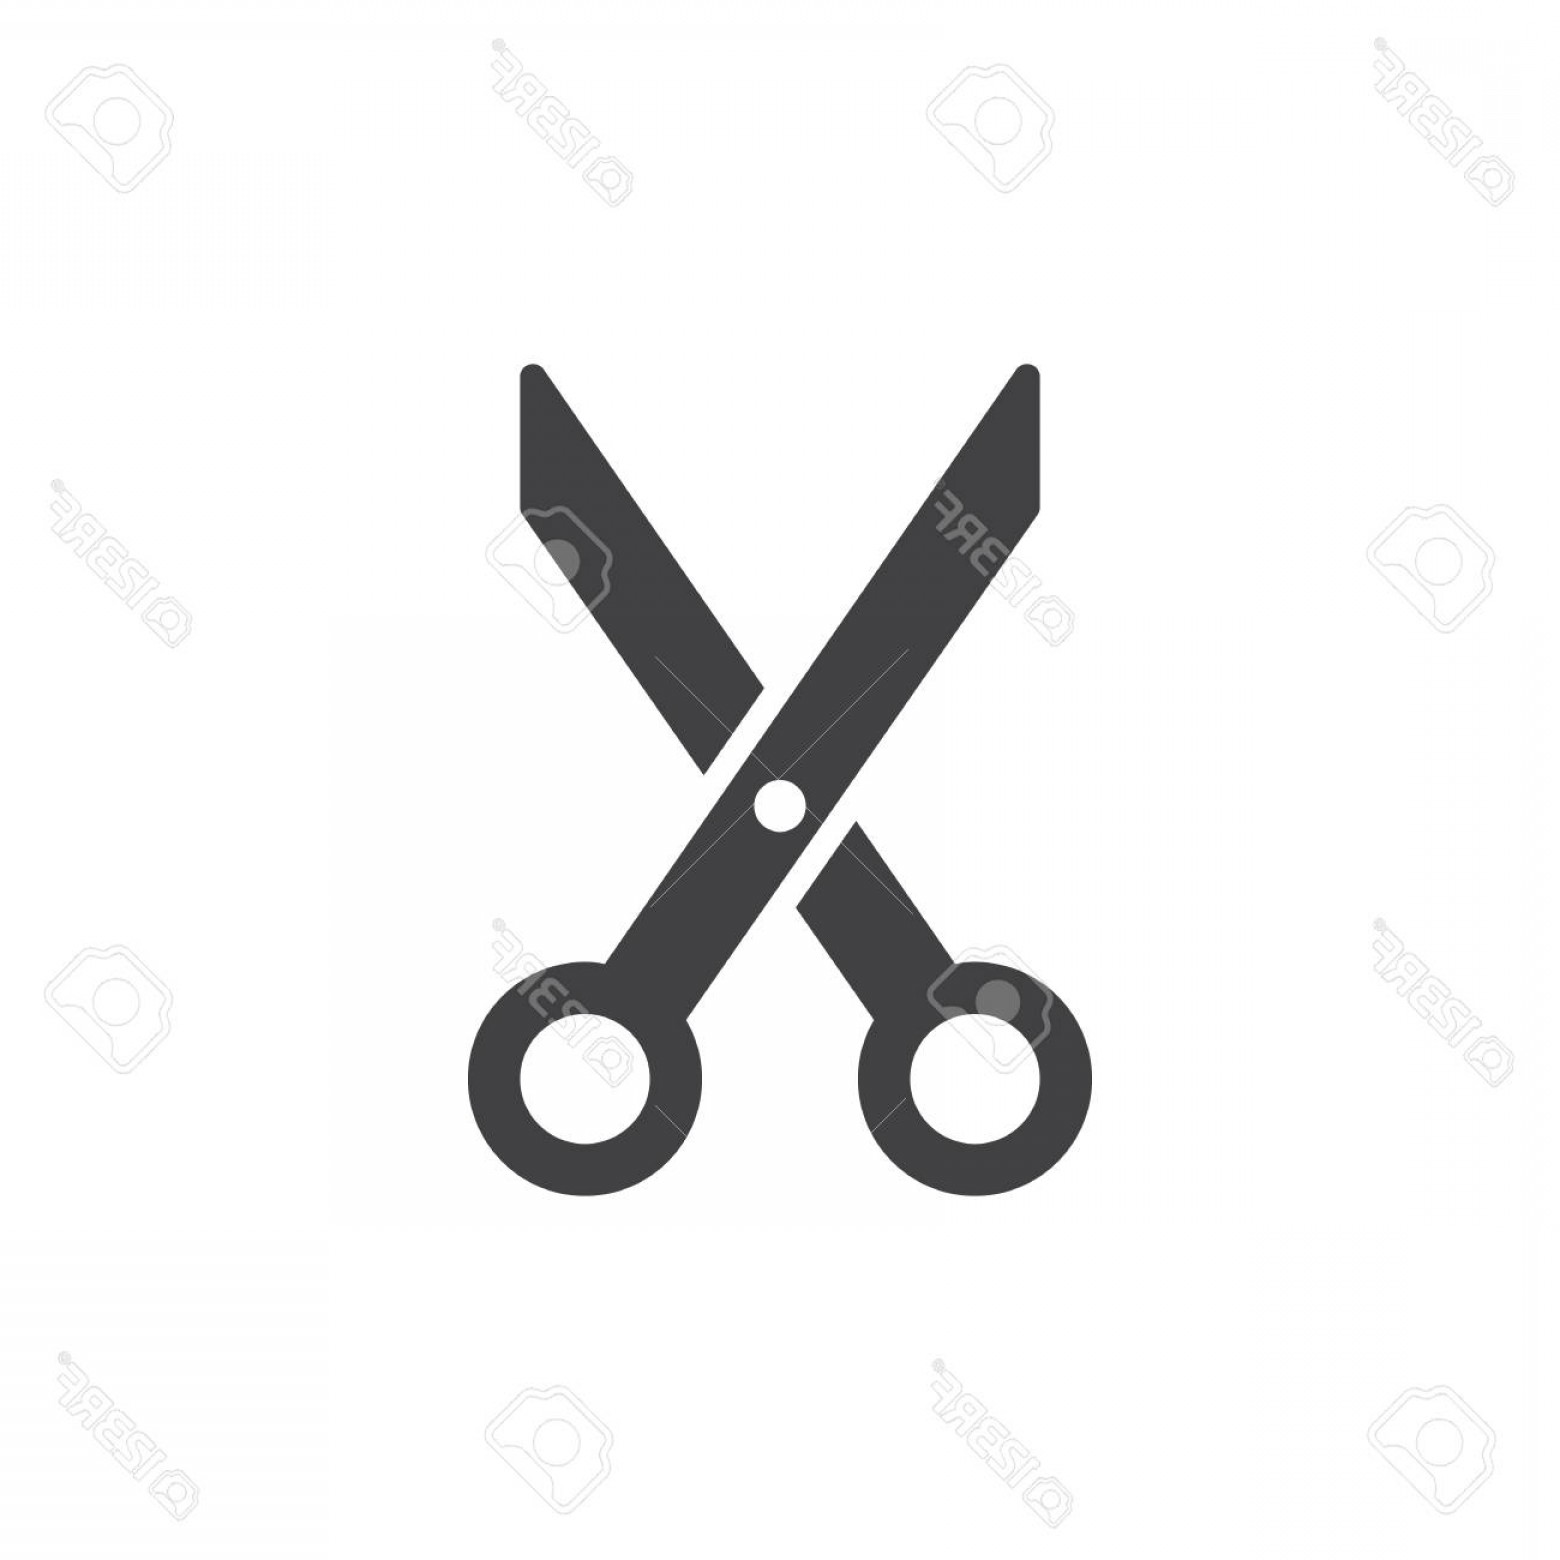 Cut Symbol Vector: Photostock Vector Scissors Cut Icon Vector Filled Flat Sign Solid Pictogram Isolated On White Barbershop Symbol Logo I